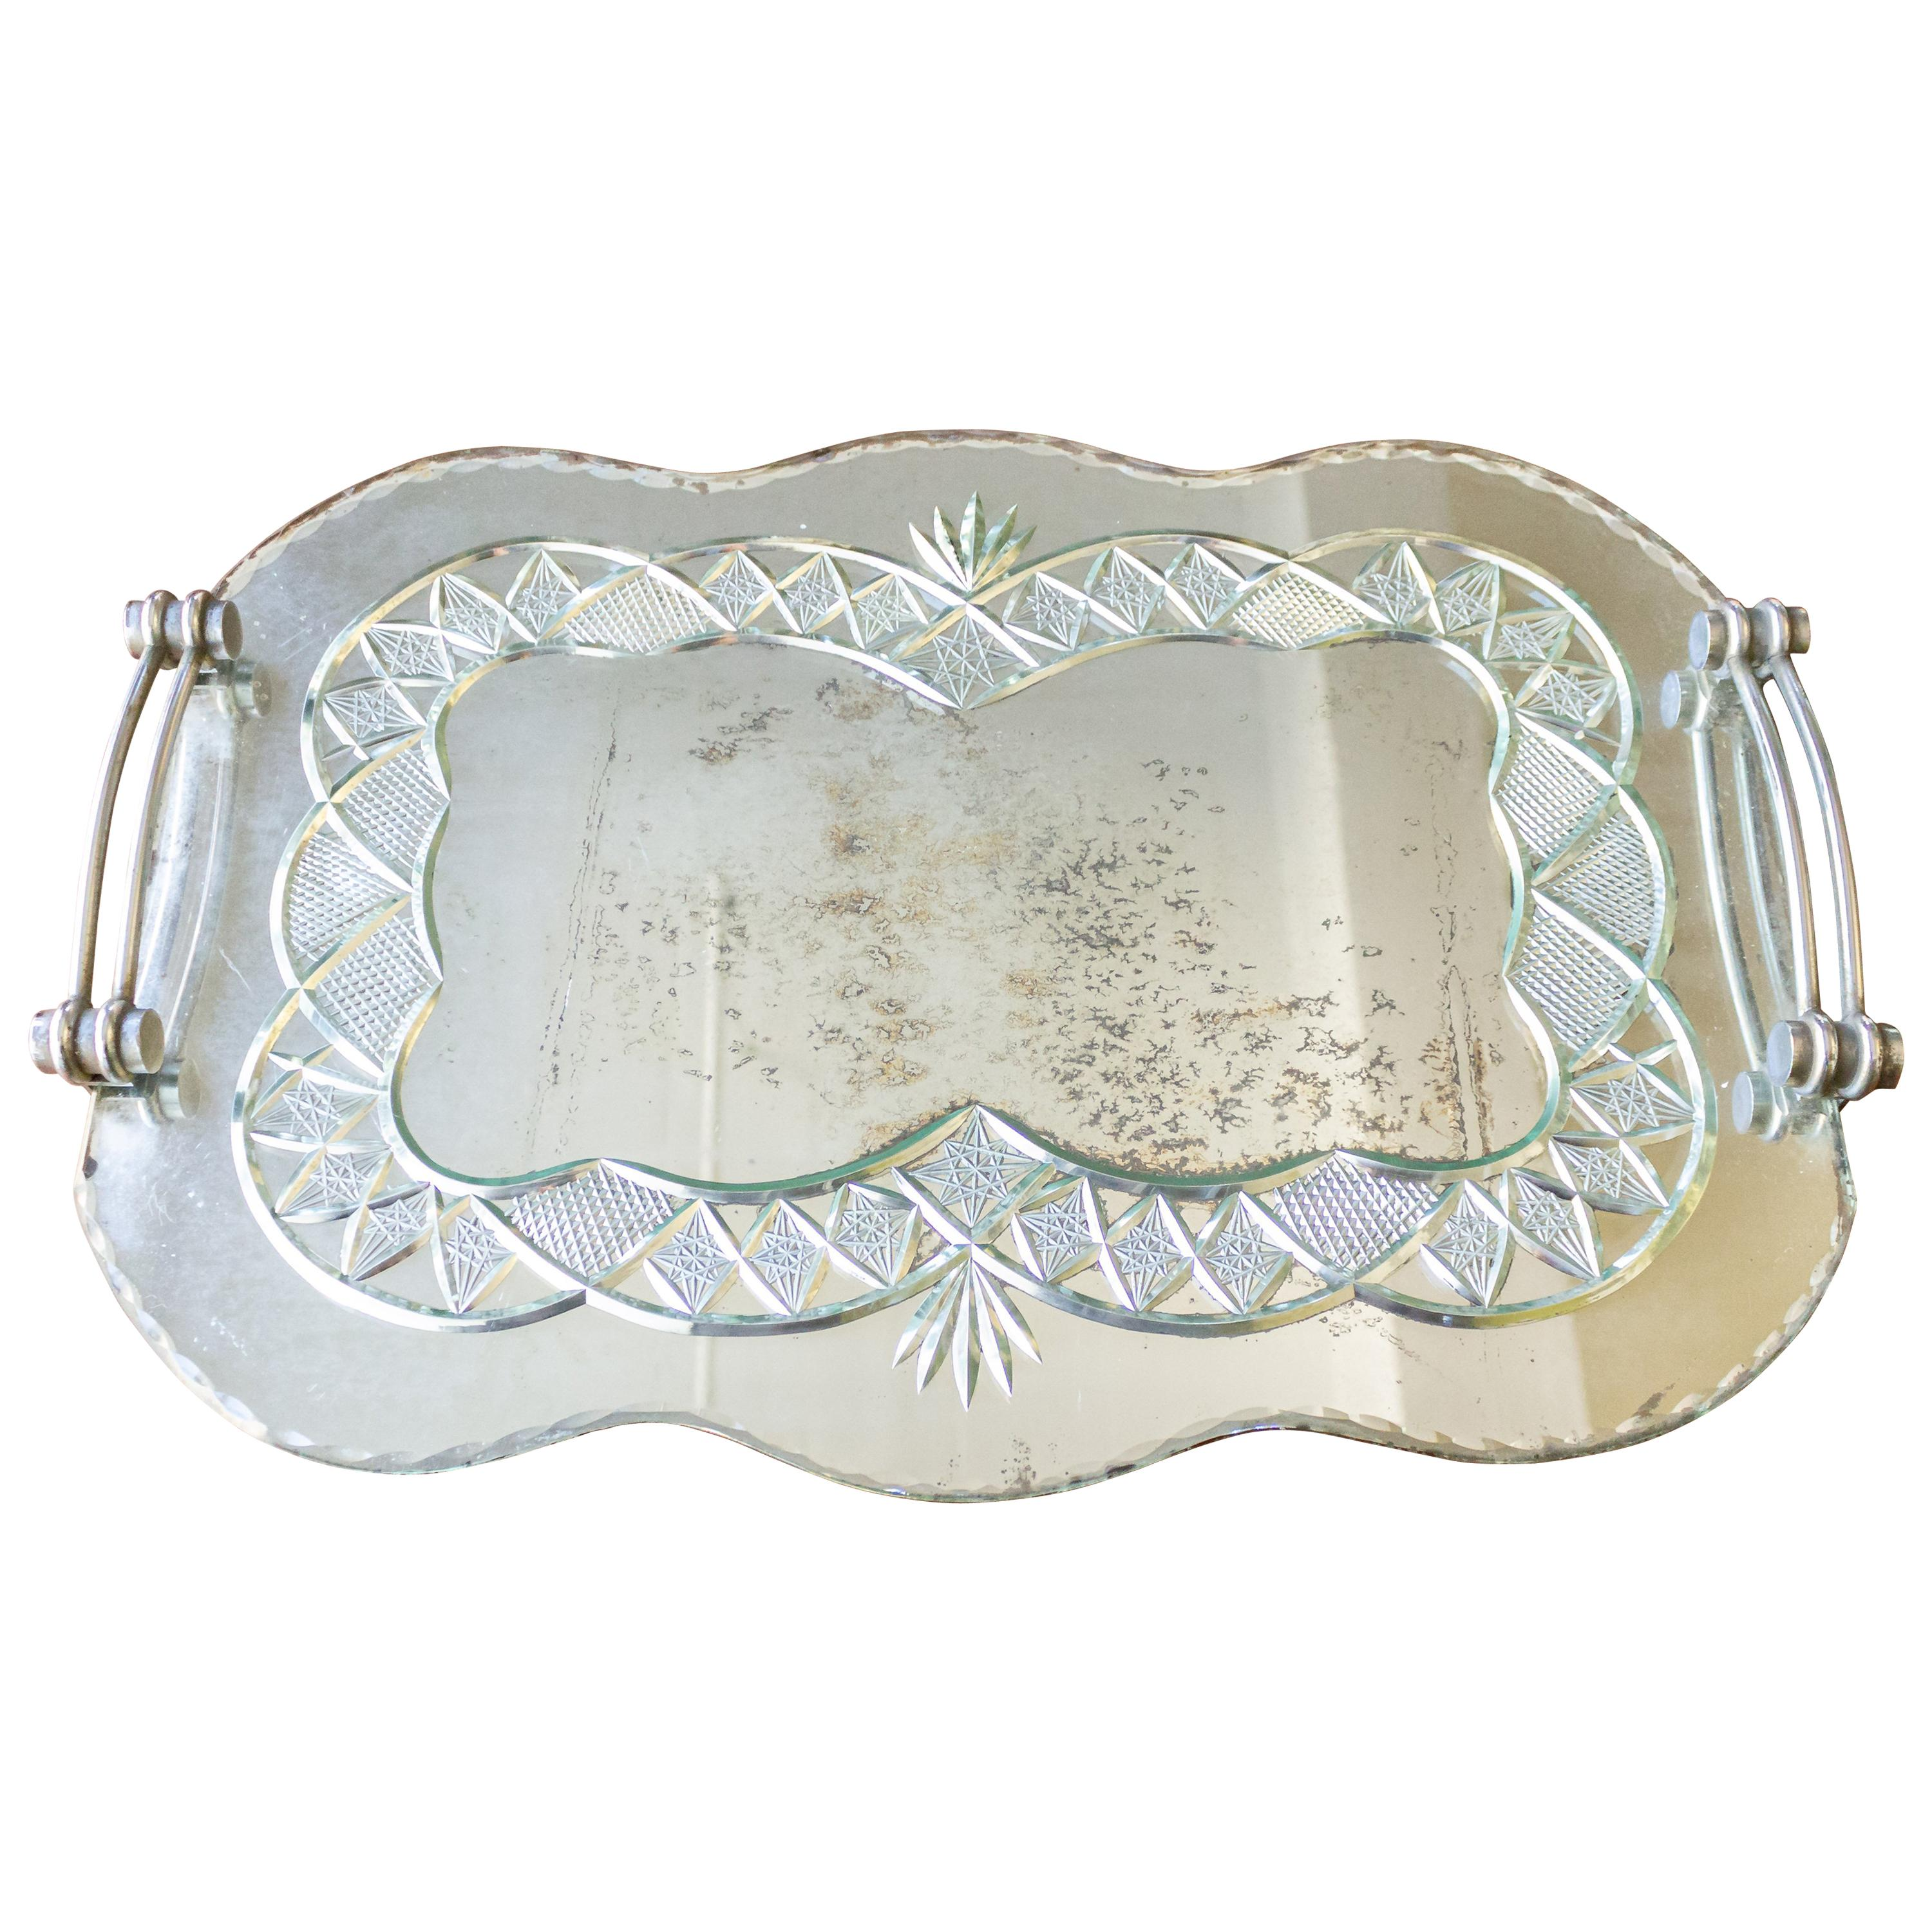 French Art Deco Mirrored Serving Tray